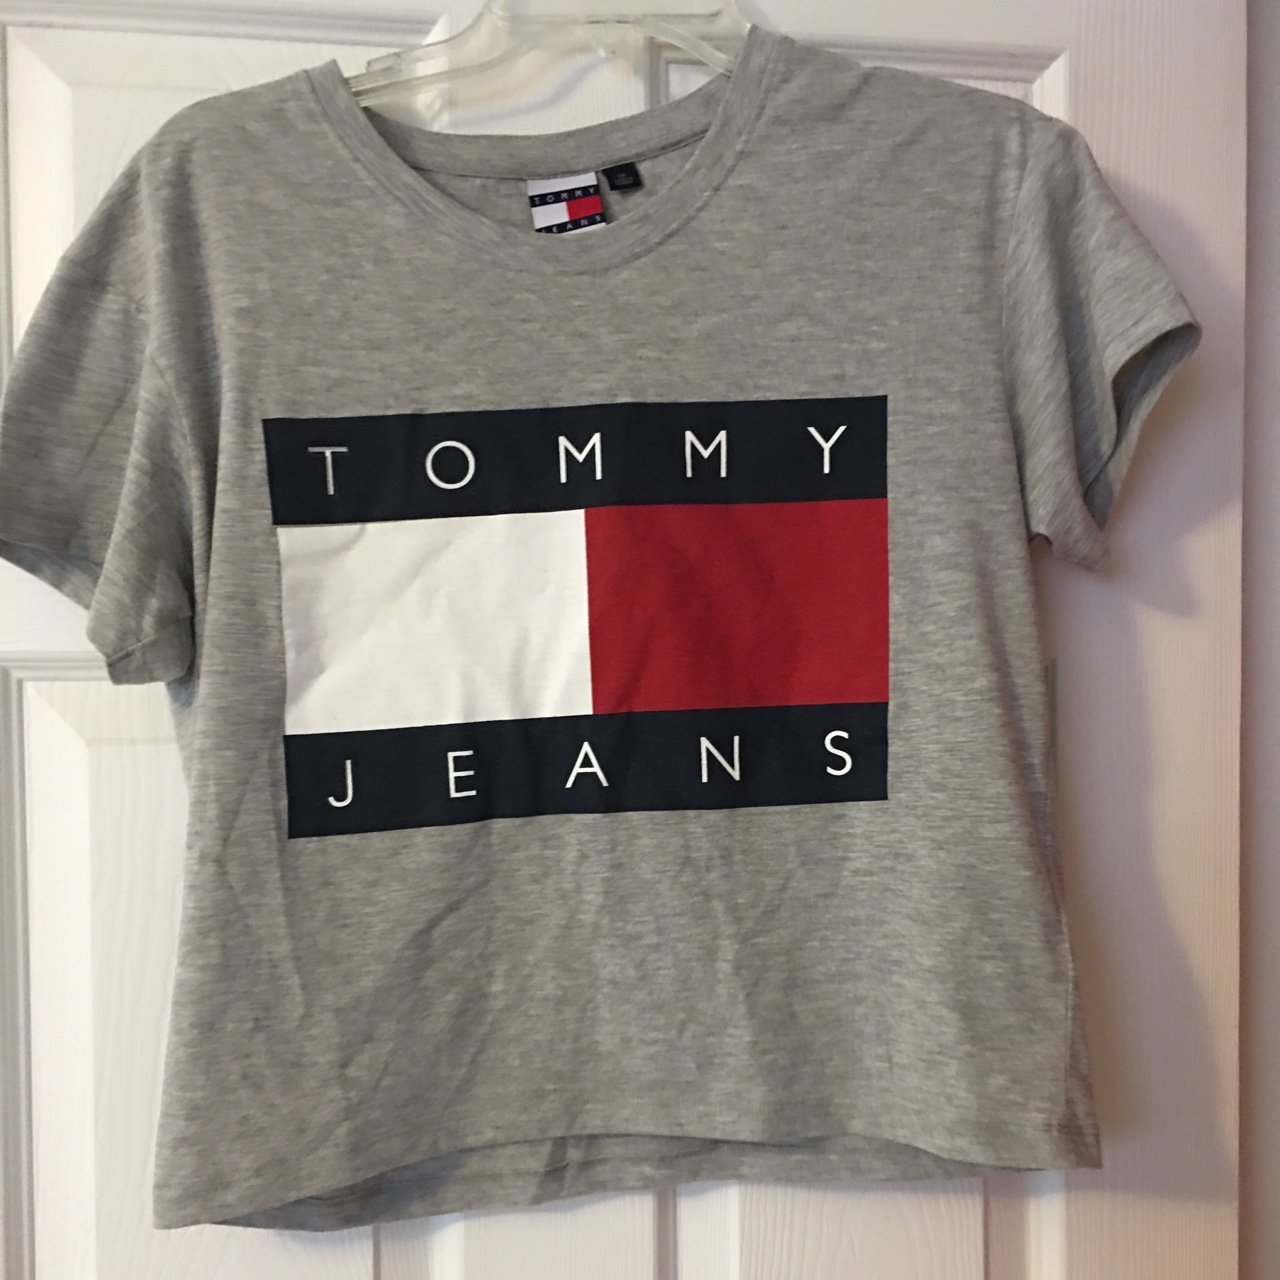 13f0f94c0 Tommy Hilfiger t-shirt for women, size small, mint crop top - Depop